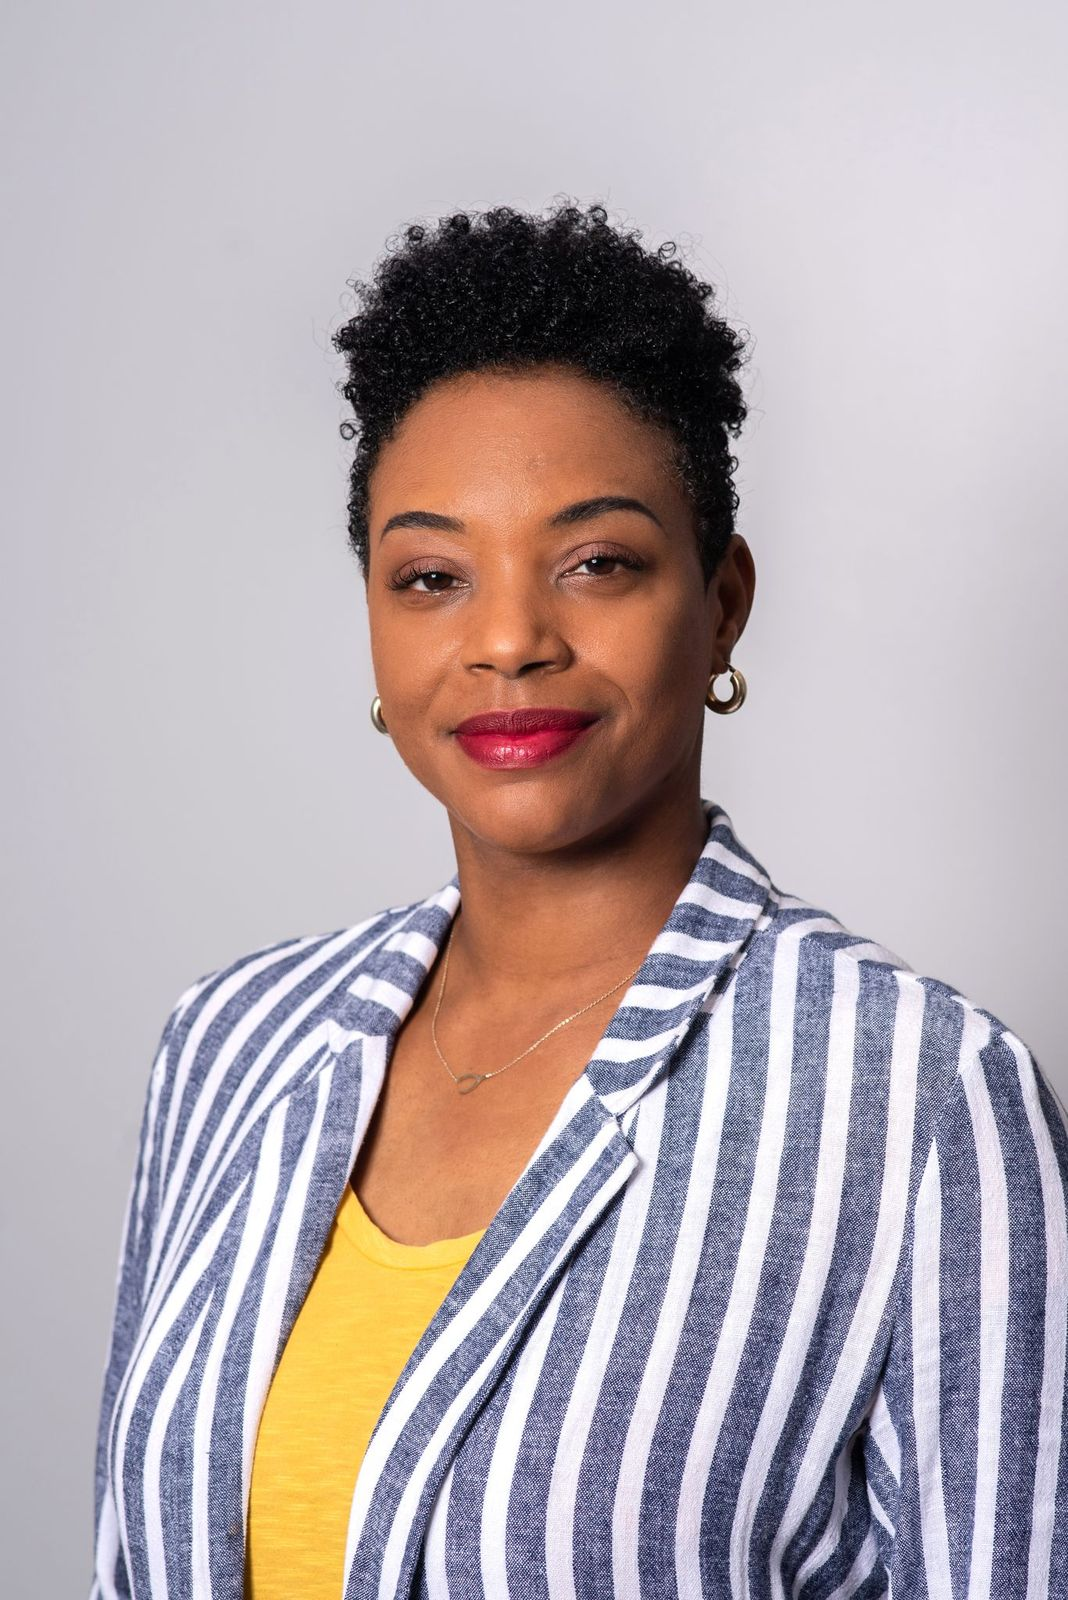 Bahamian public relations professional elected to international position